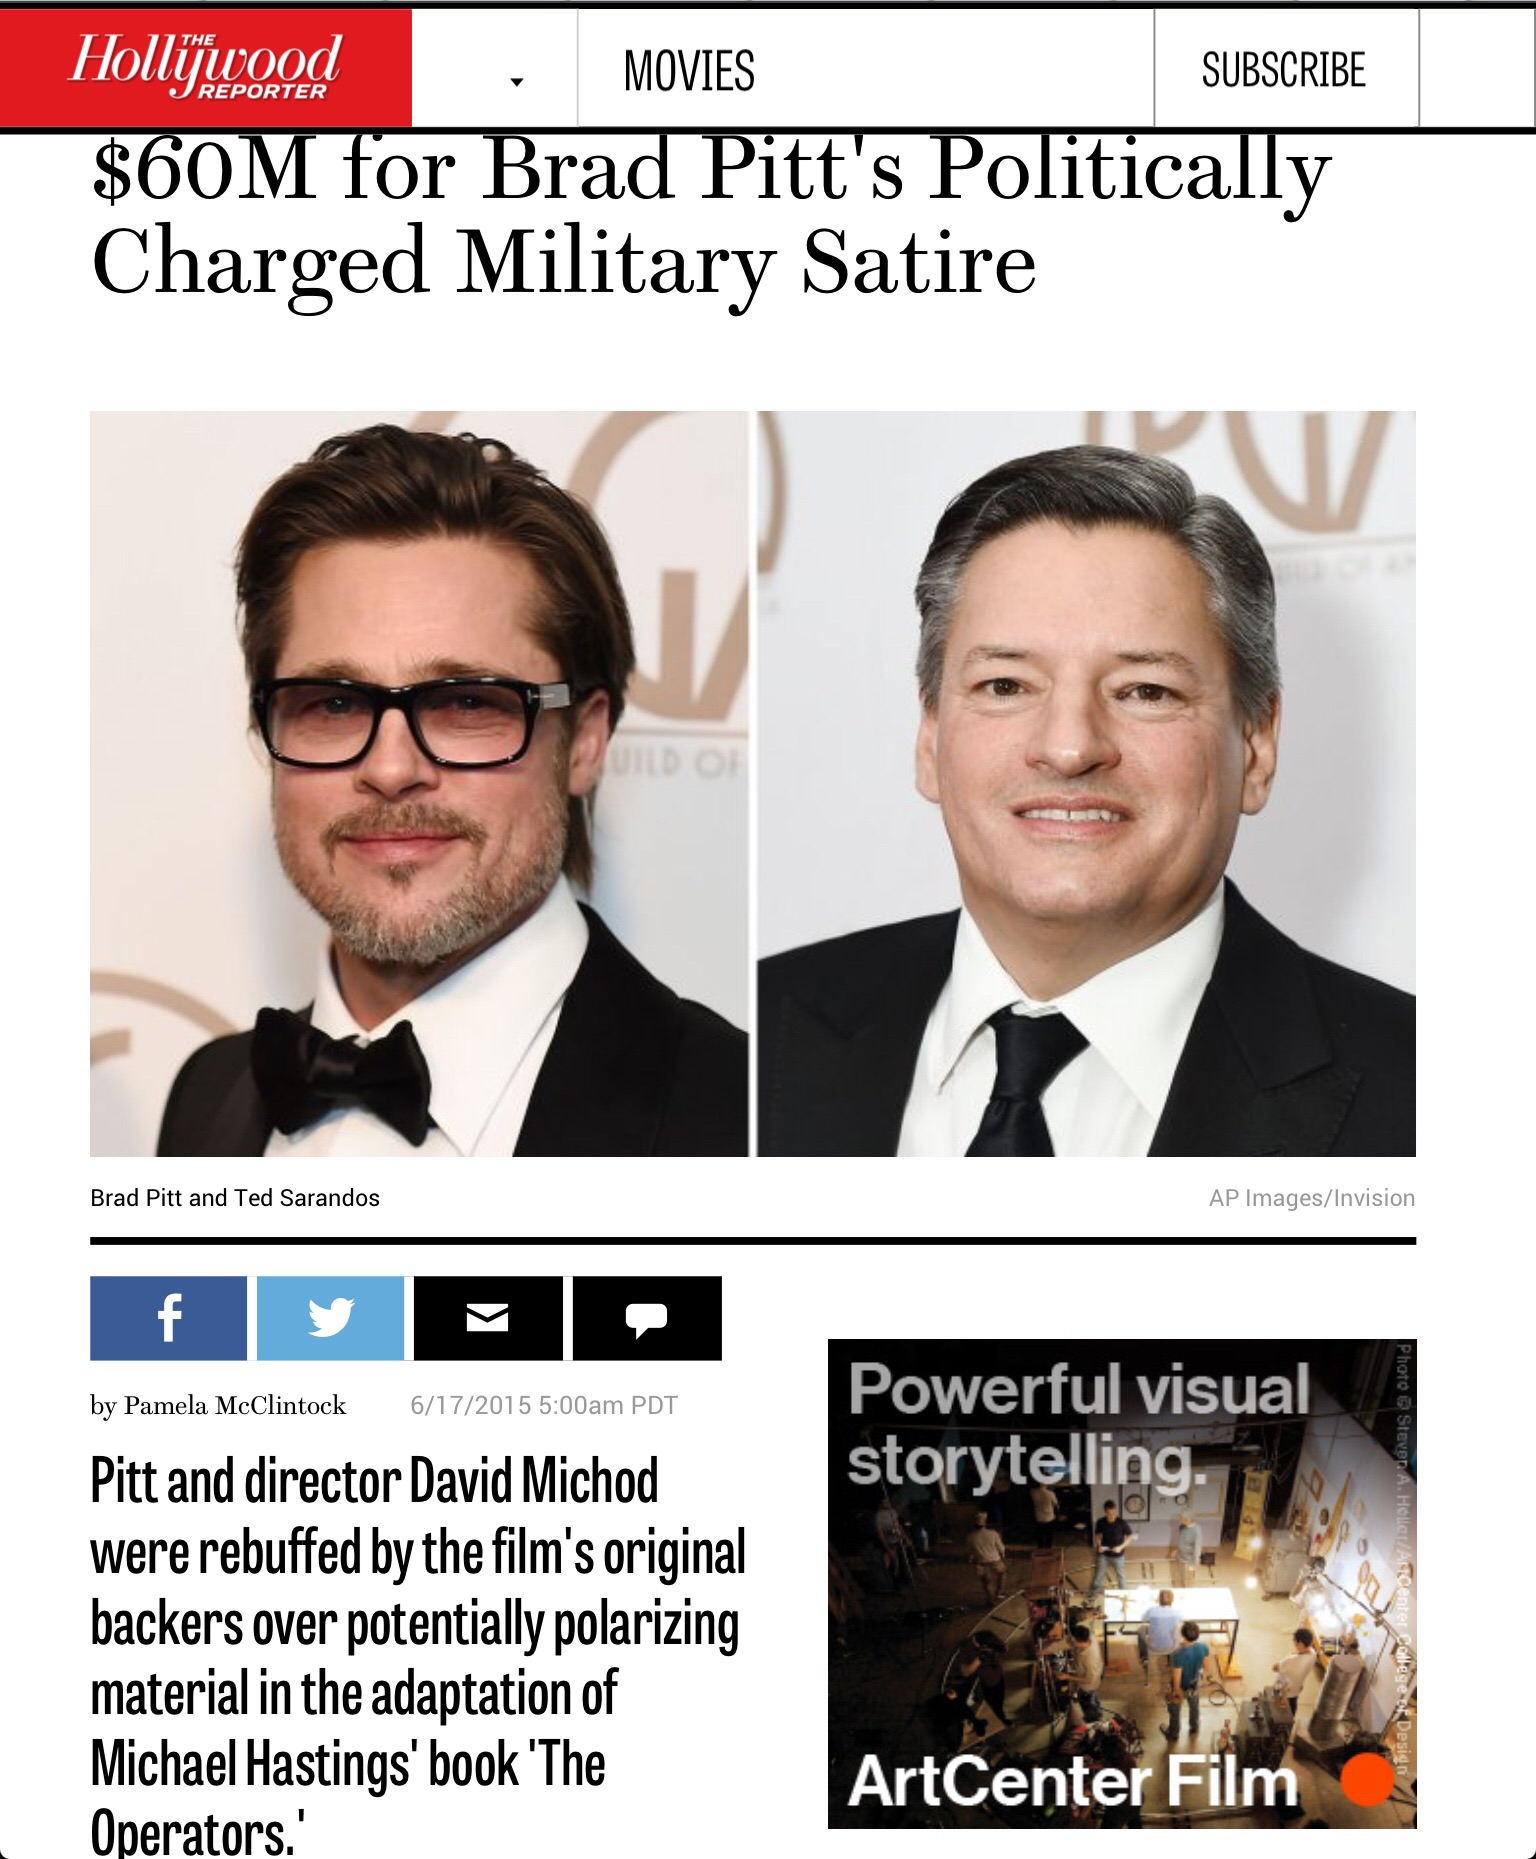 The Hollywood Reporter.